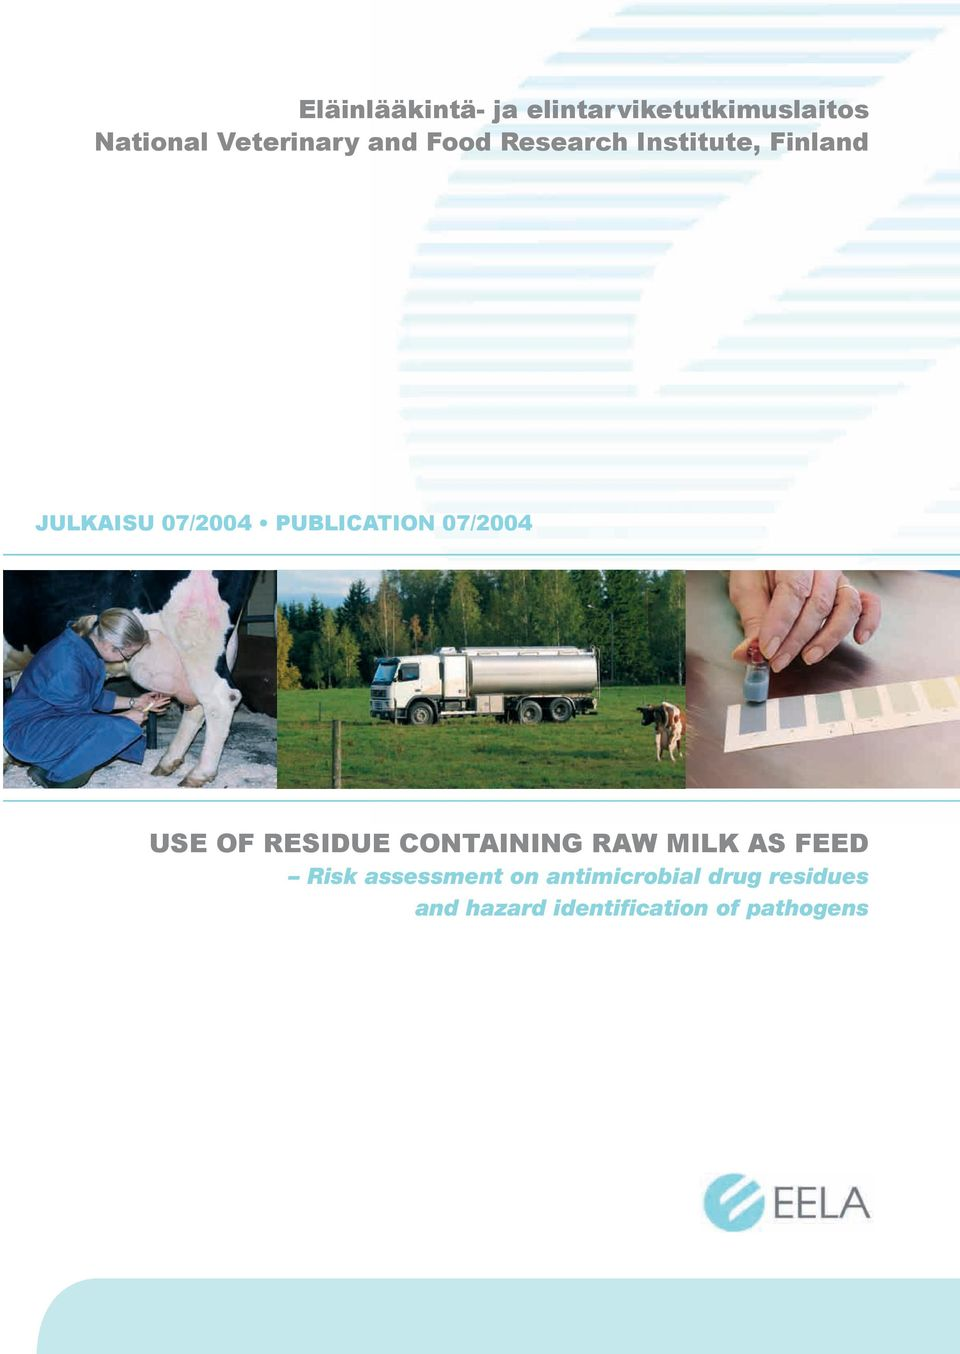 07/2004 USE OF RESIDUE CONTAINING RAW MILK AS FEED Risk assessment